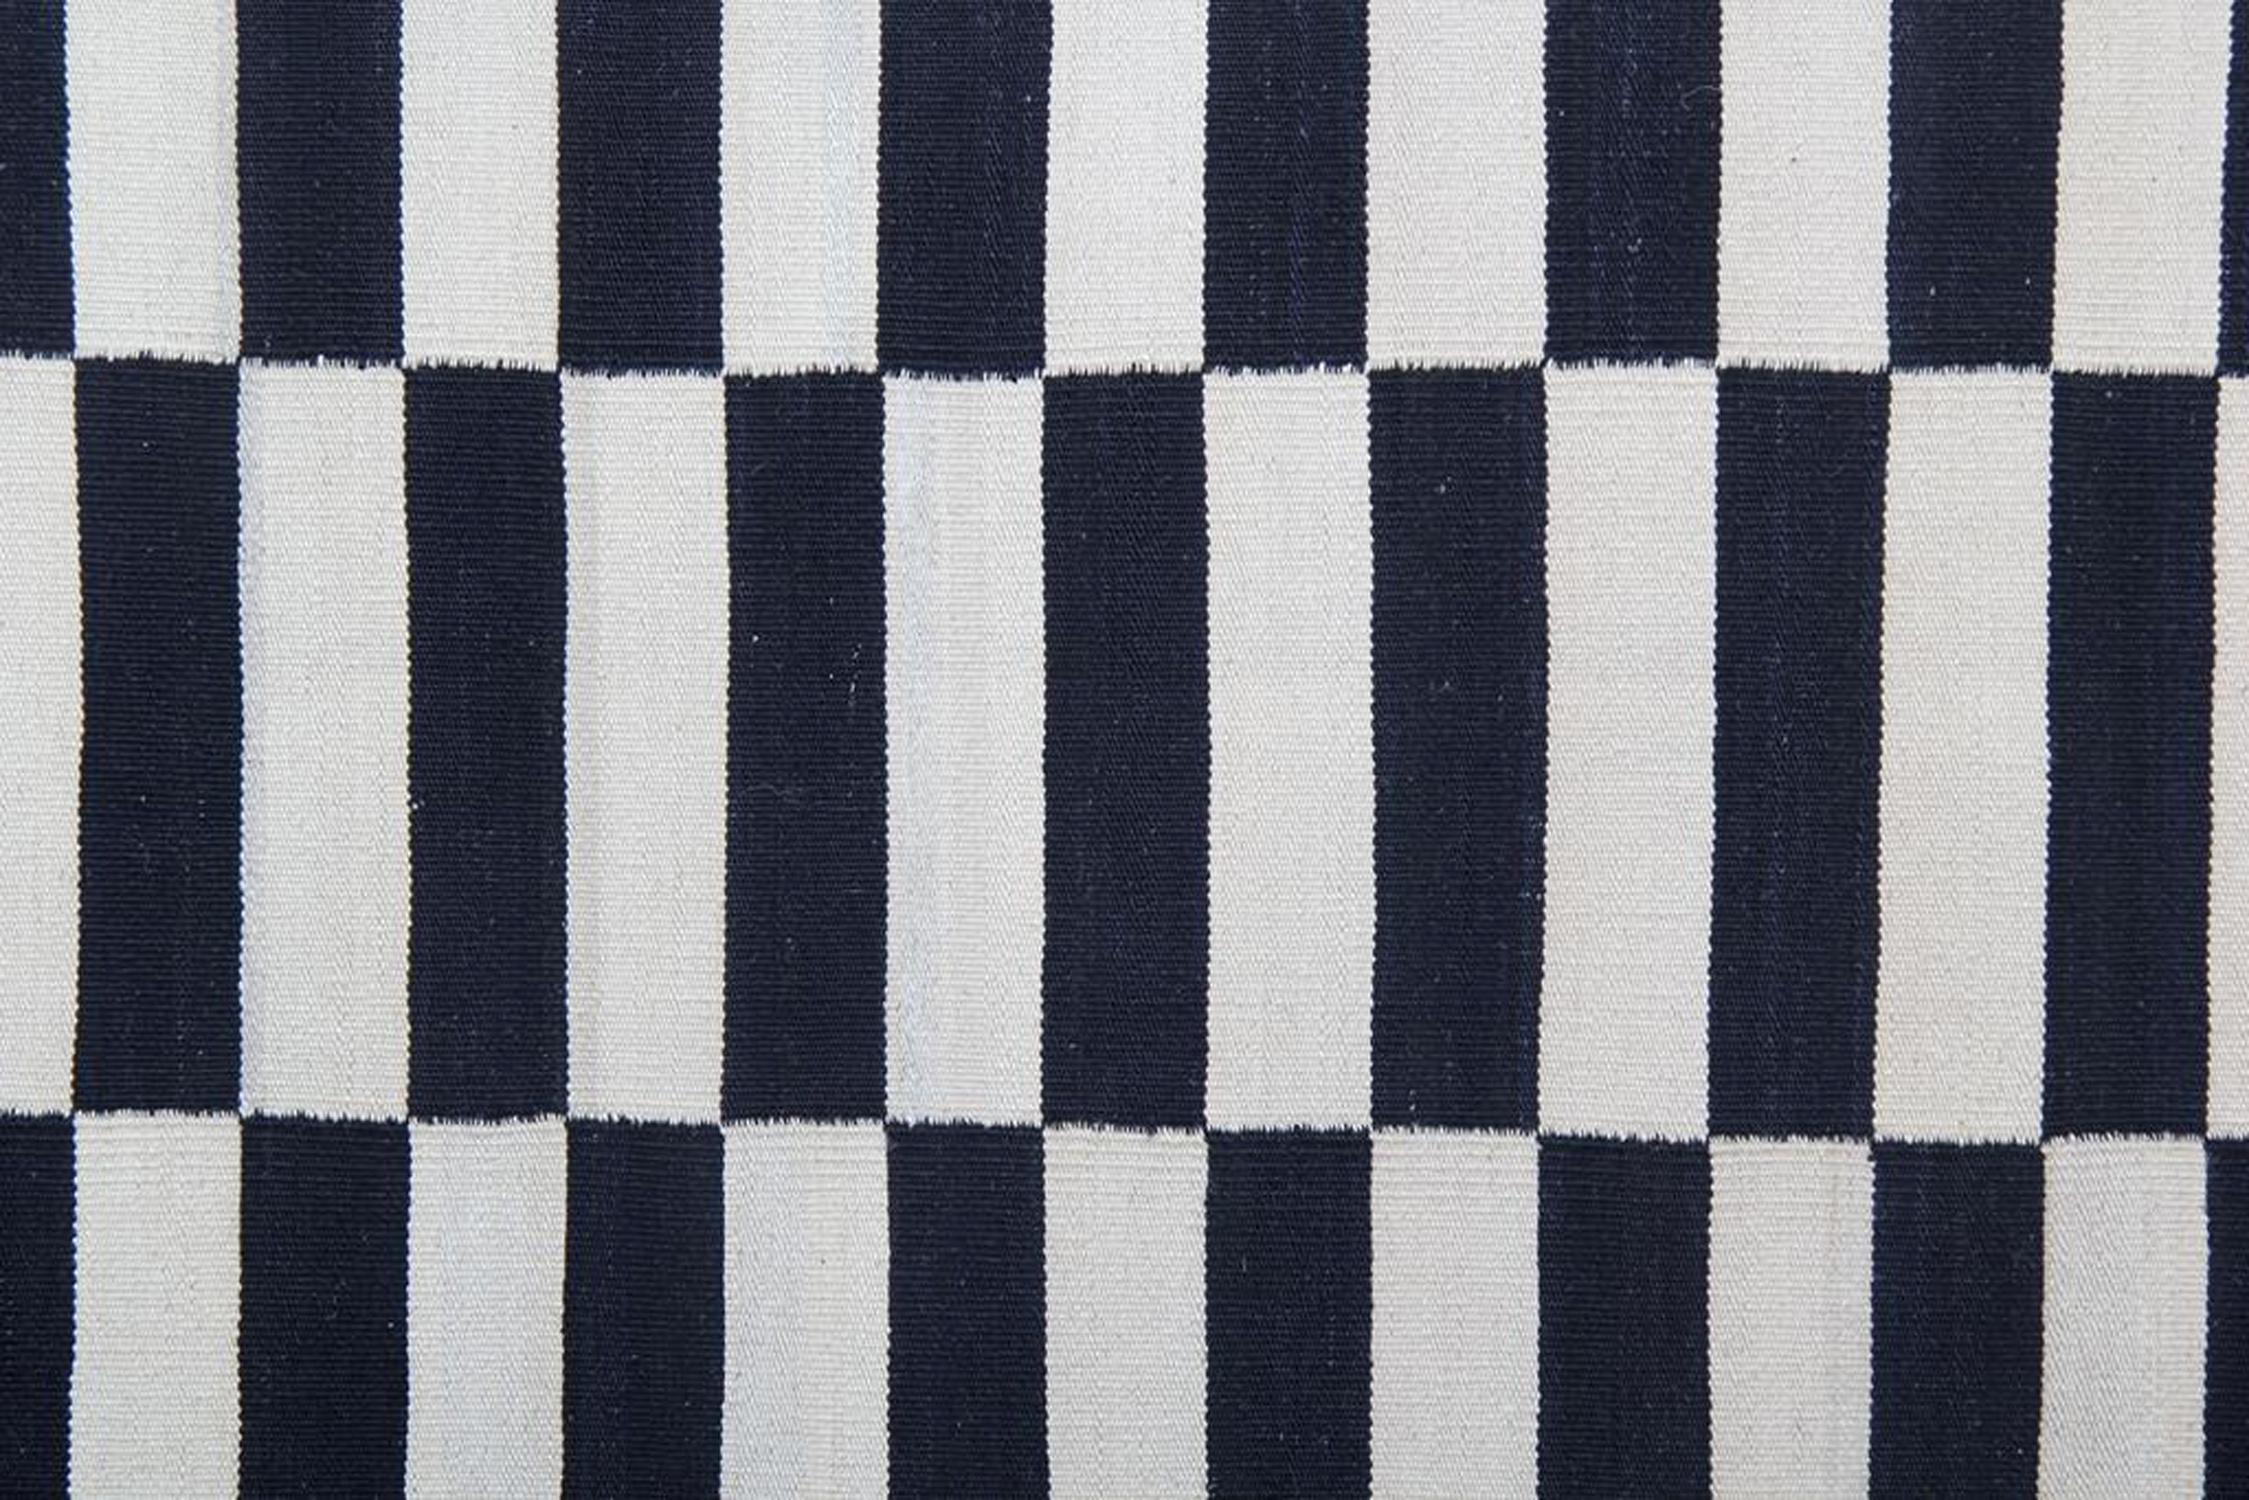 Afghan Runner Rugs Black And White Kilim Rugs Striped Stair Runner